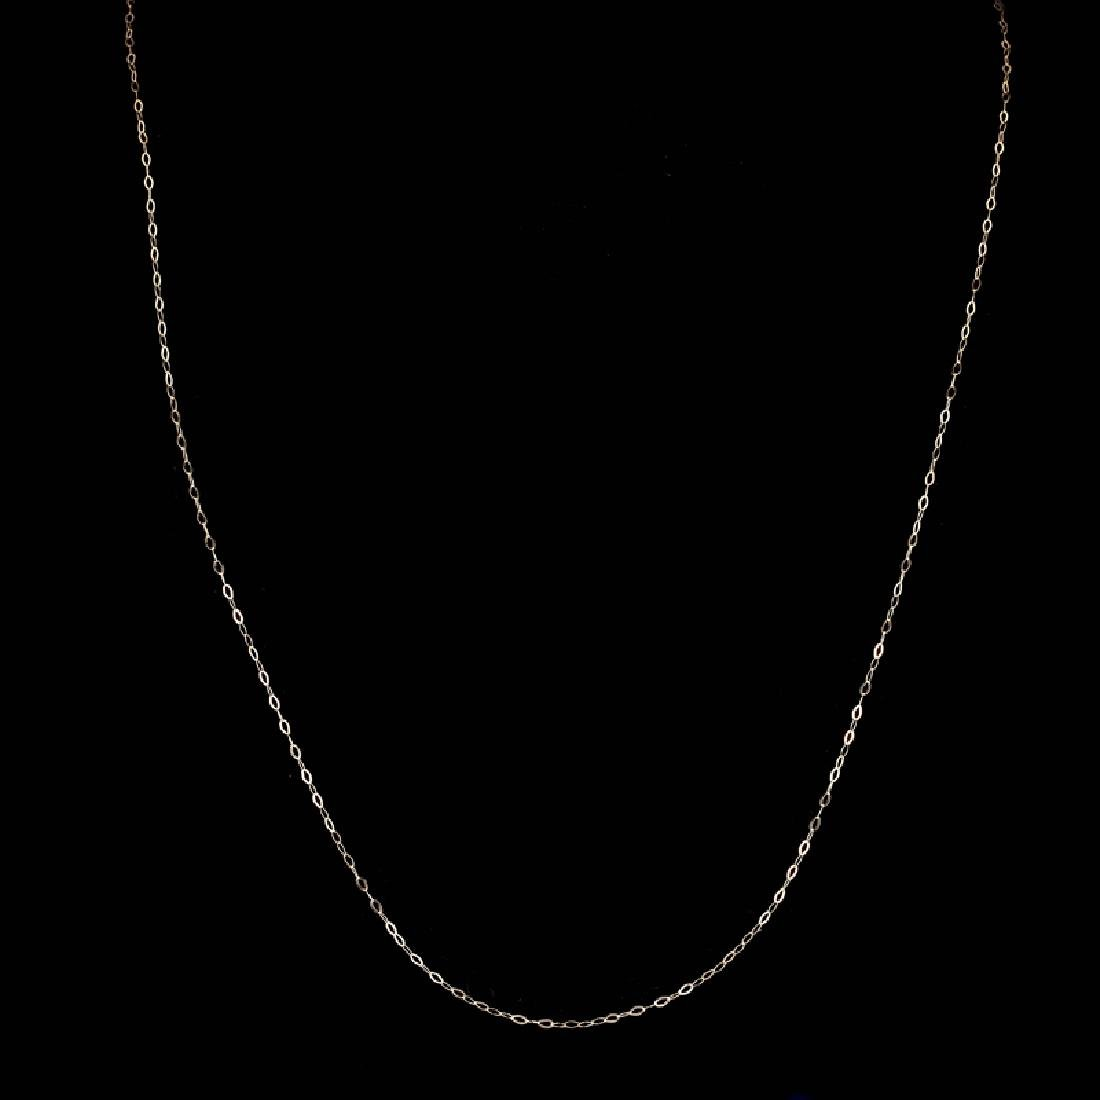 *Fine Jewelry 14 KT Gold, 18'' Diamond Cut Link Chain